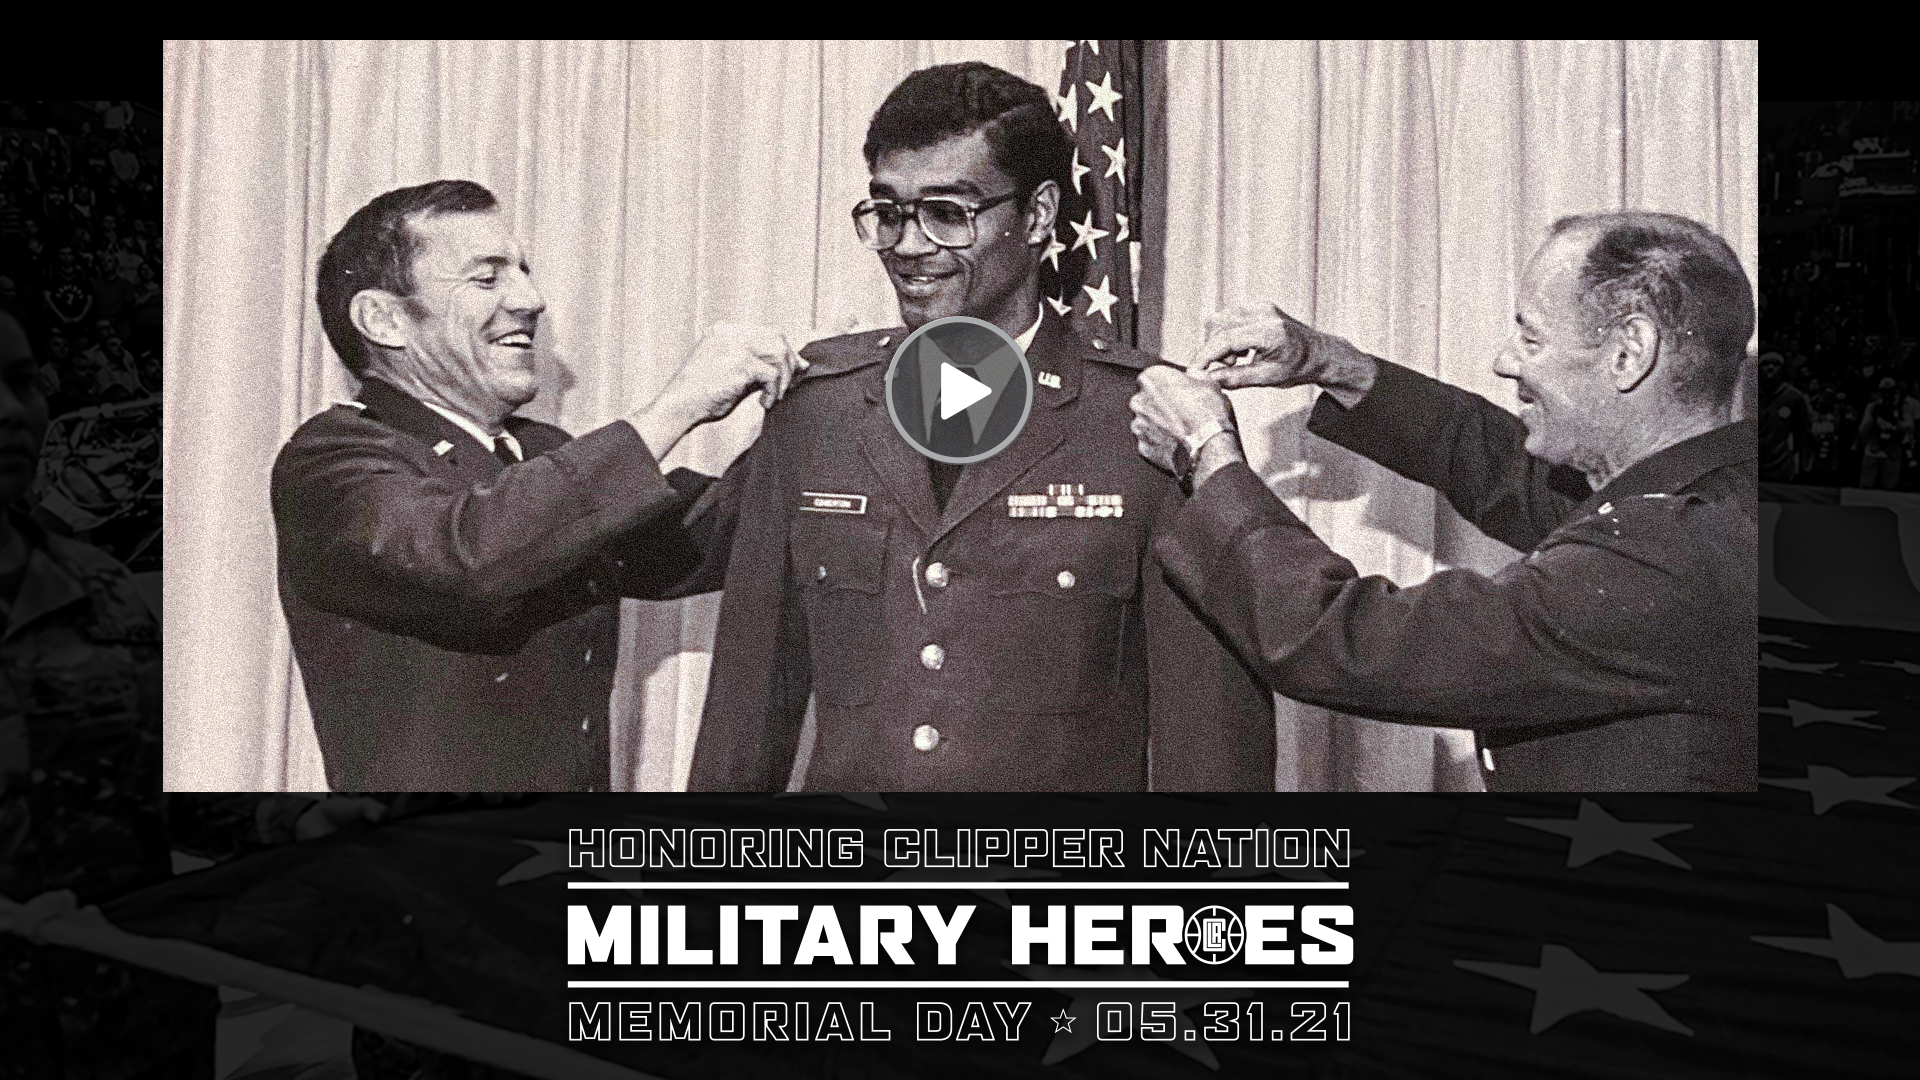 Honoring Clipper Nation Military Heroes   Memorial Day (5.31.21)